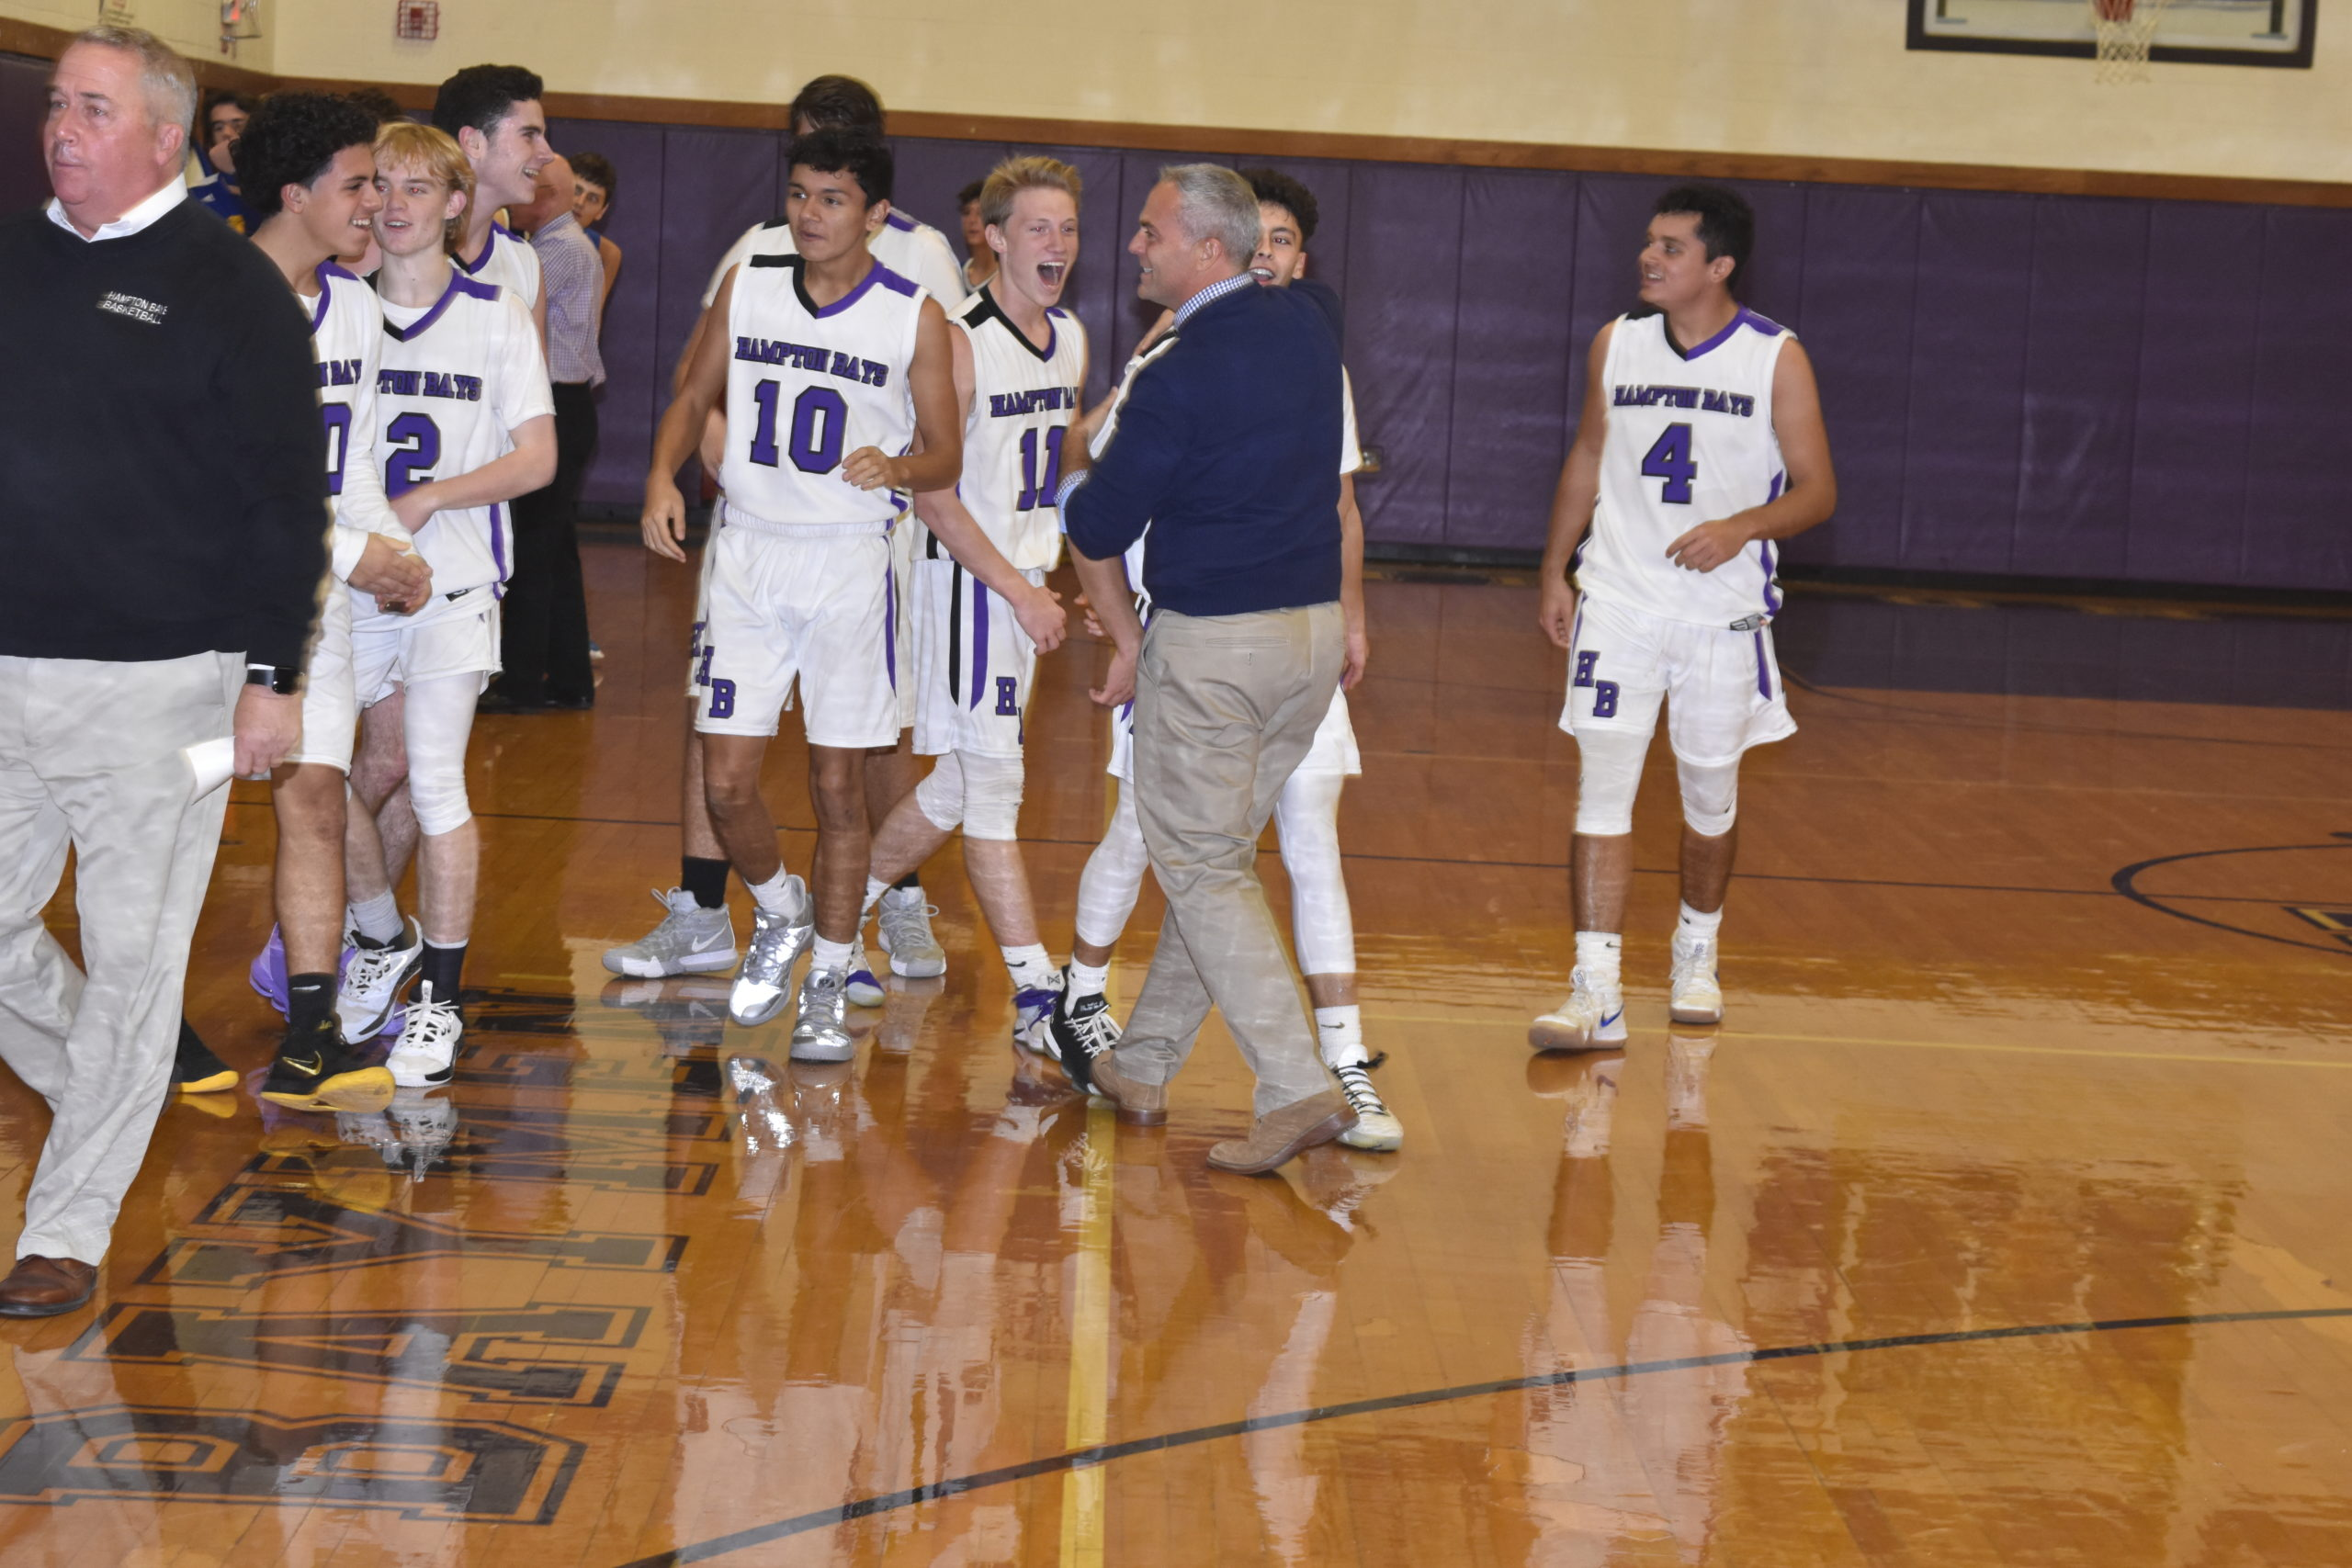 Assistant coach John Paga and teammates congratulate Steven Mora after his half-court buzzer beater led to a 54-51 victory over West Islip on Friday night.